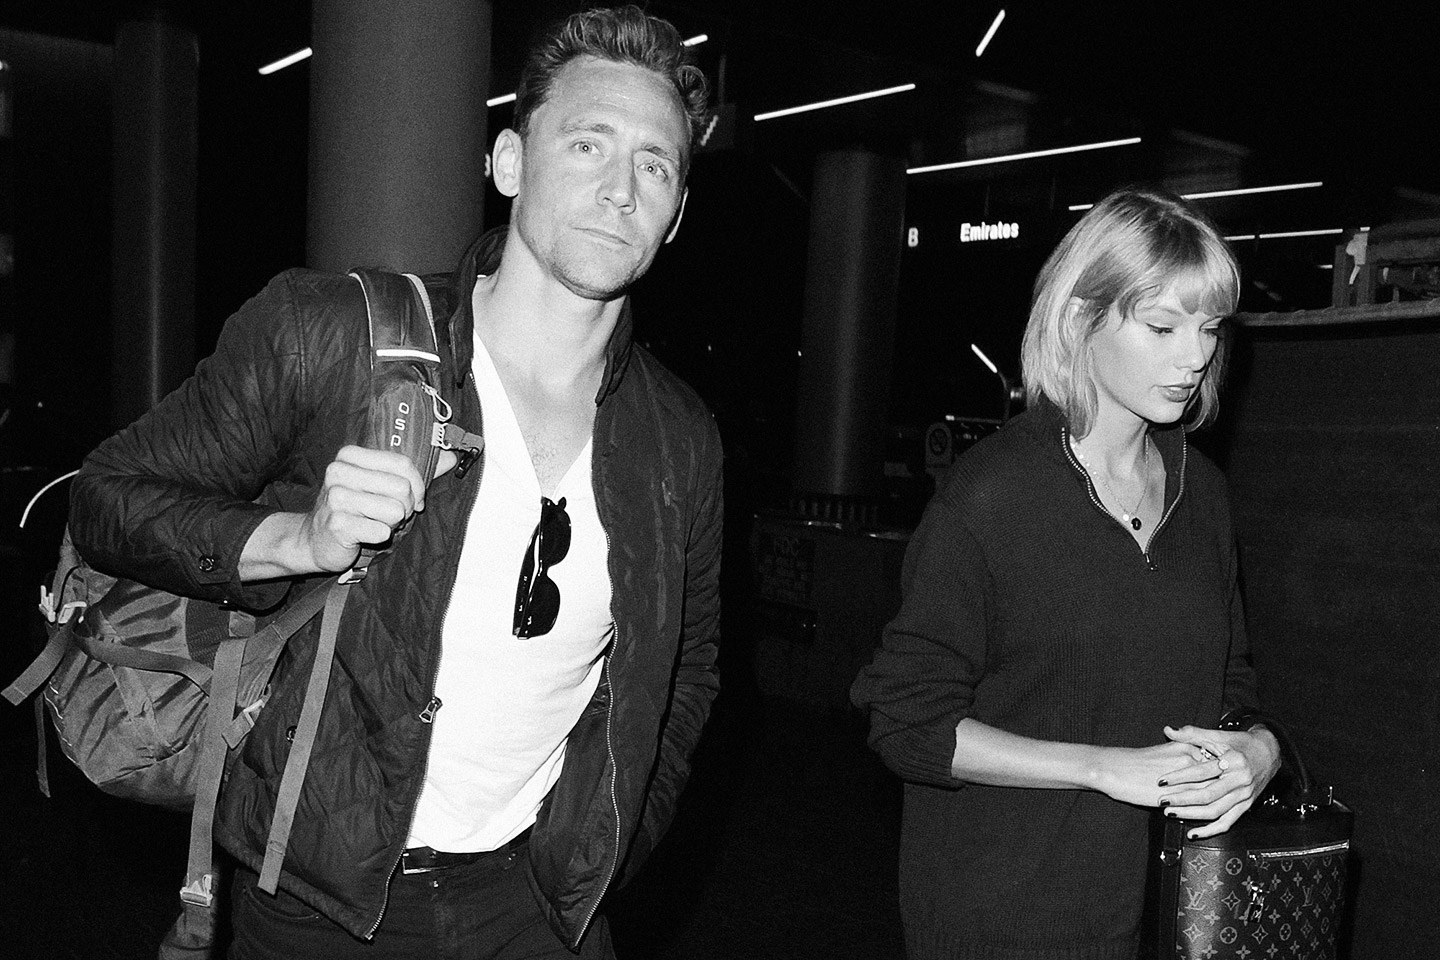 tom-hiddleston-over-taylor-swift-2016-images